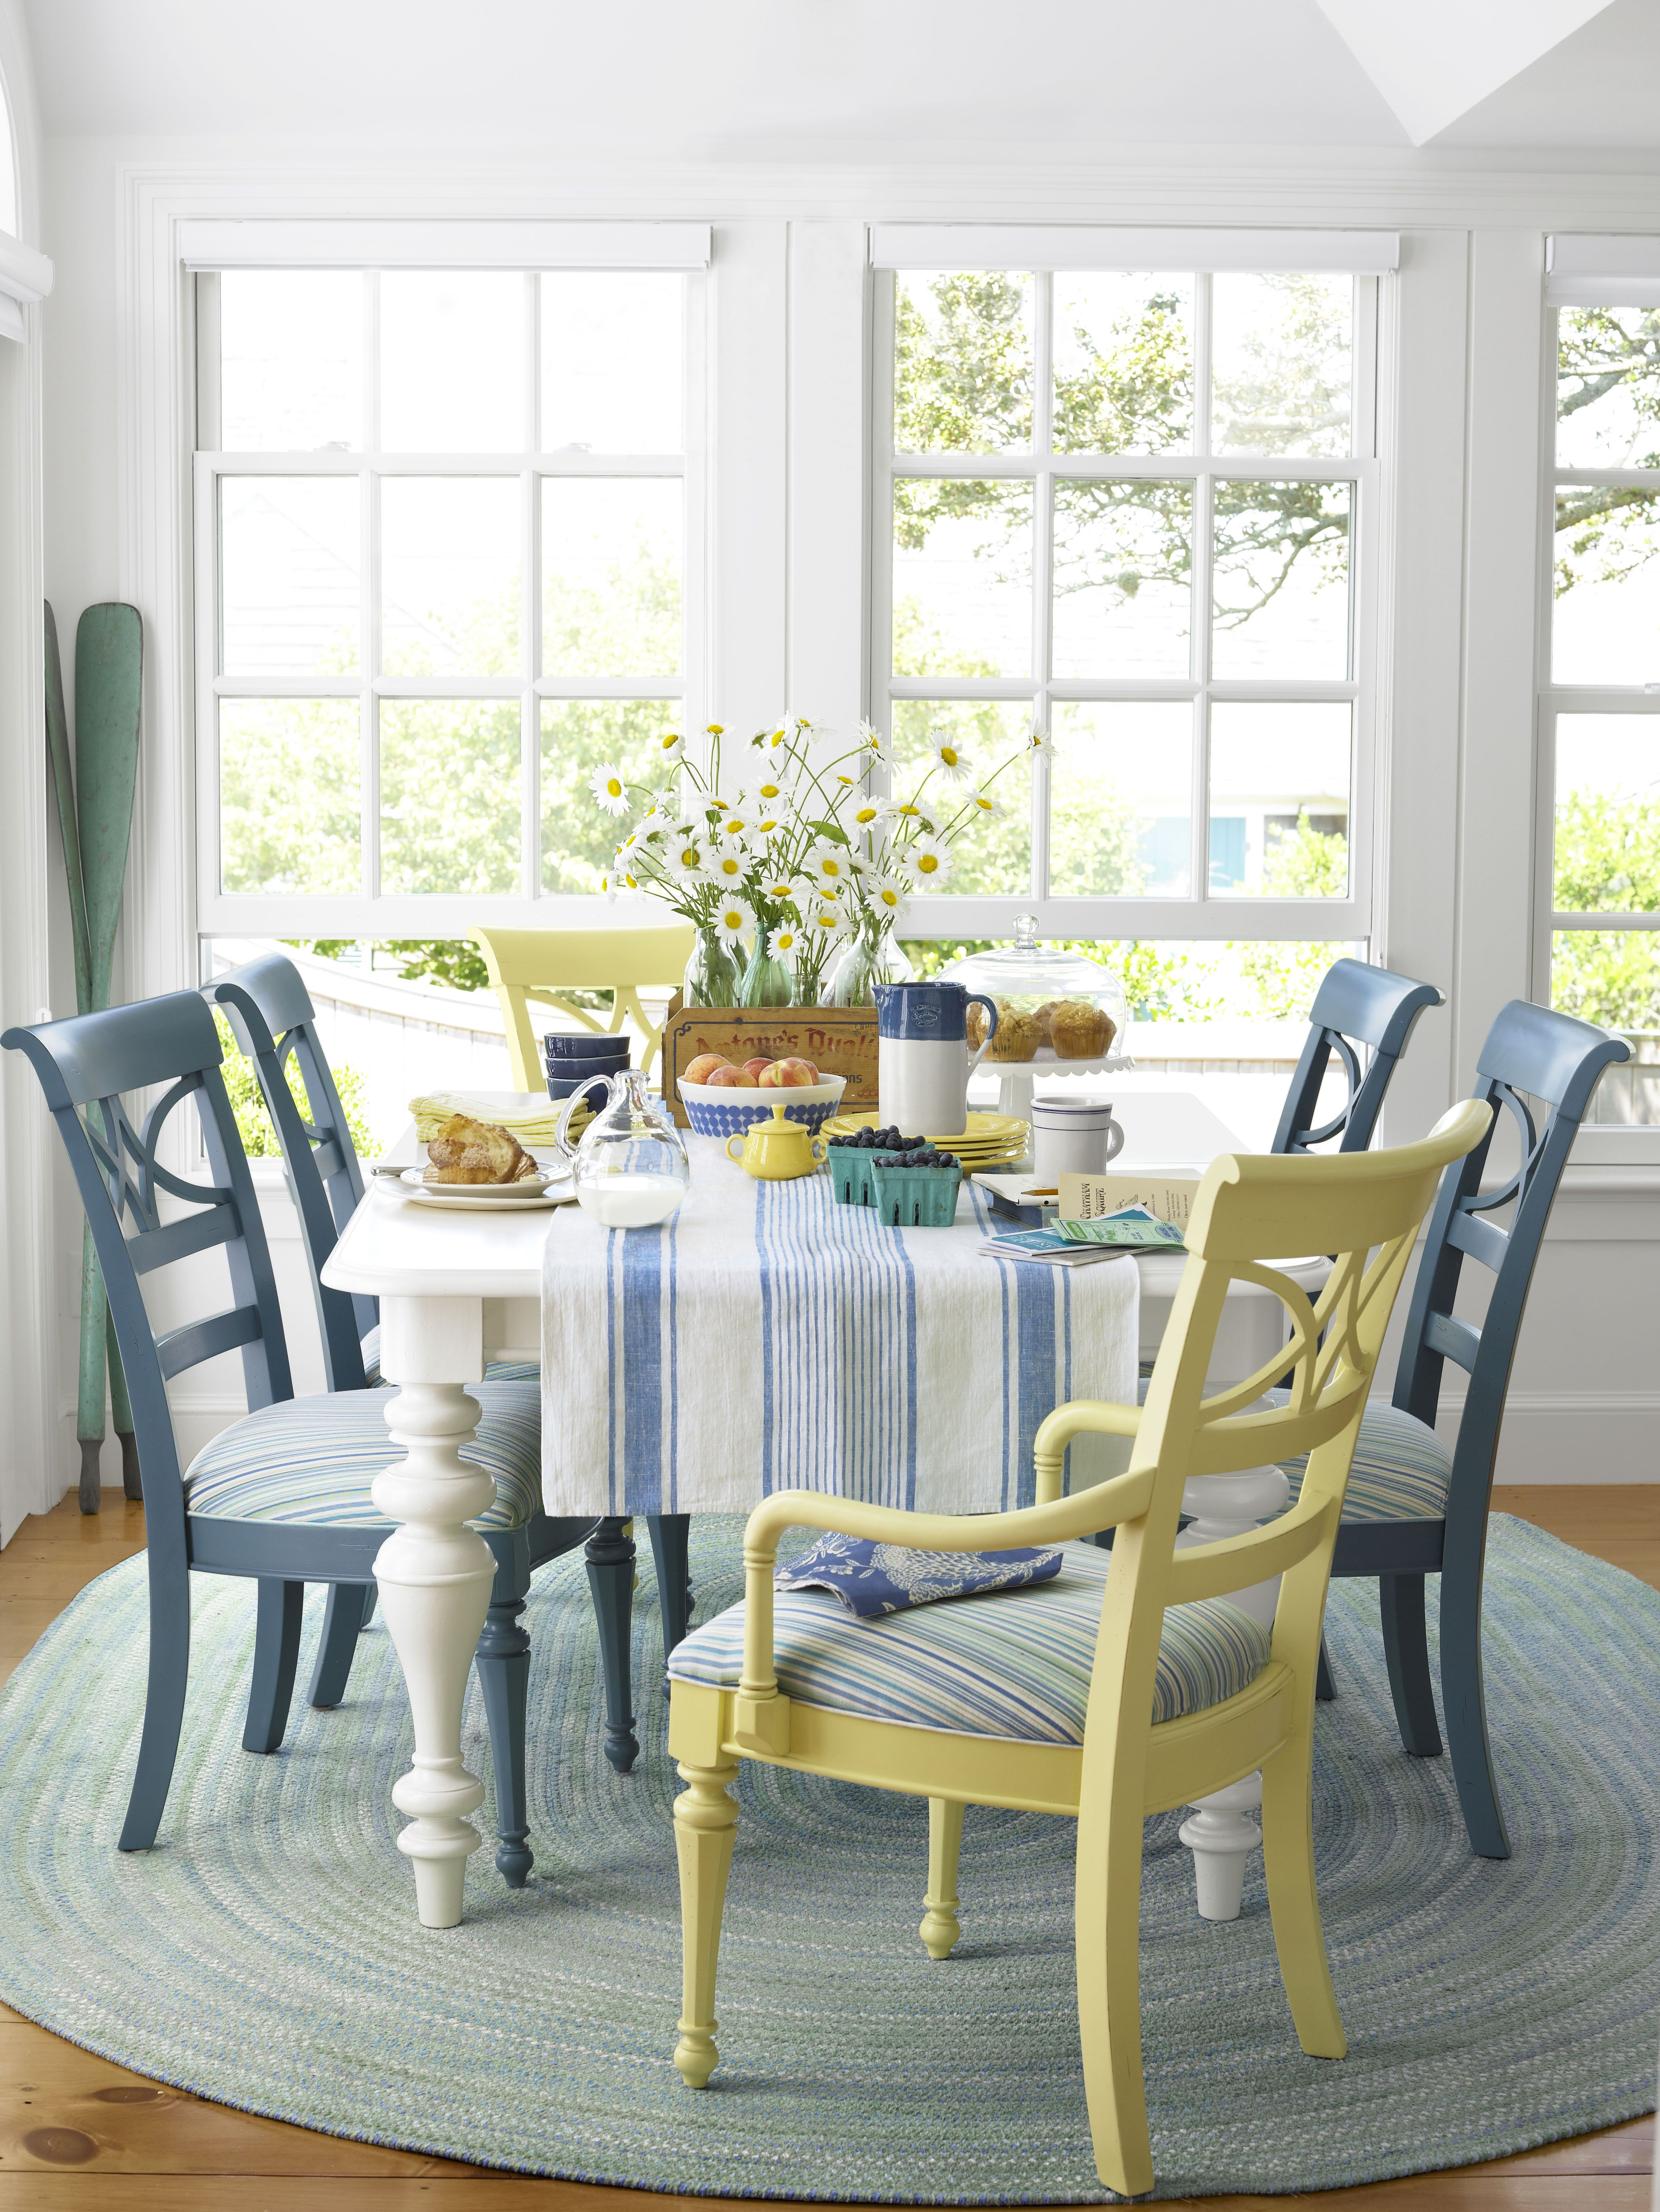 41 Easy Breezy Beach House Decorating Ideas  Pink Chairs Alluring Beachy Dining Room Sets Design Inspiration